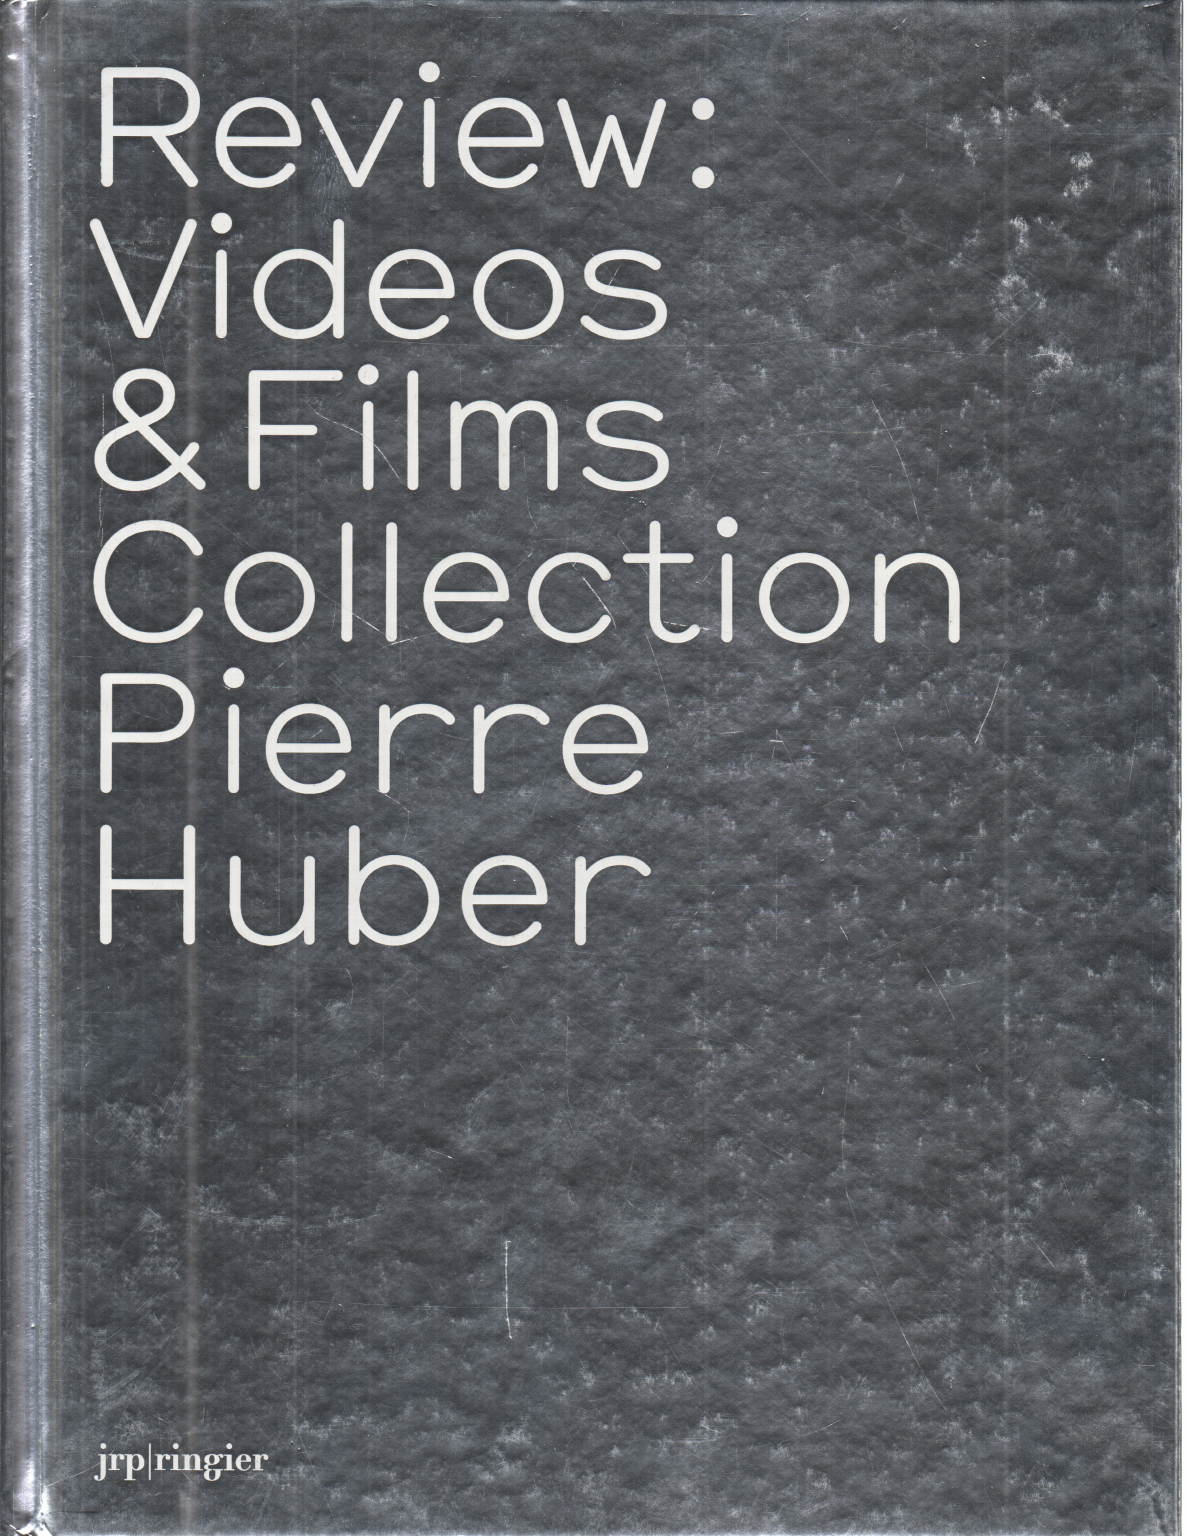 Review: Videos & Films Collection Pierre Huber, AA.VV.